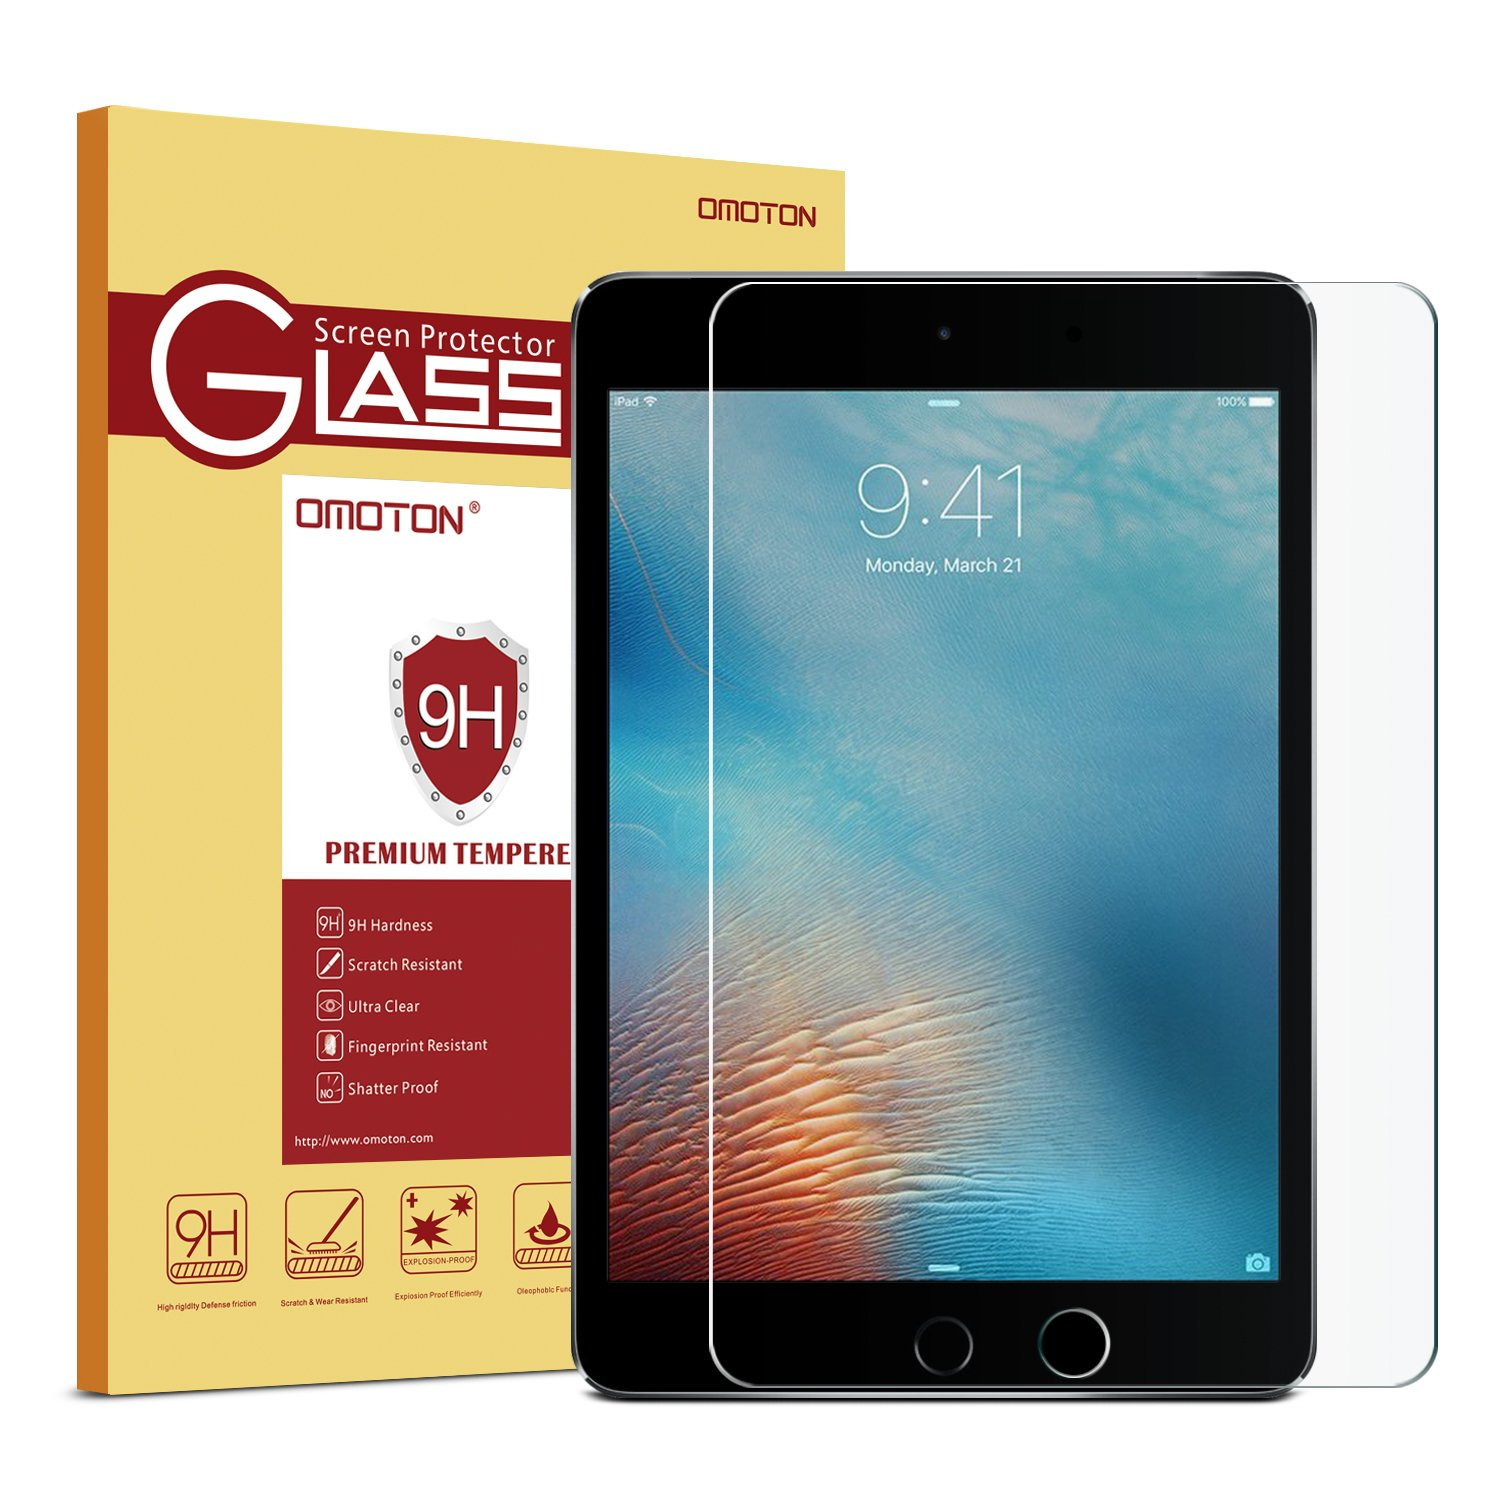 Omoton Ultra Clear 9h Hardness Tempered Glass Screen 41 Basic Electronics Symbols Electrical And Electronic Free Protector For New Ipad 2018 2017 97 Pro Inch Air 2